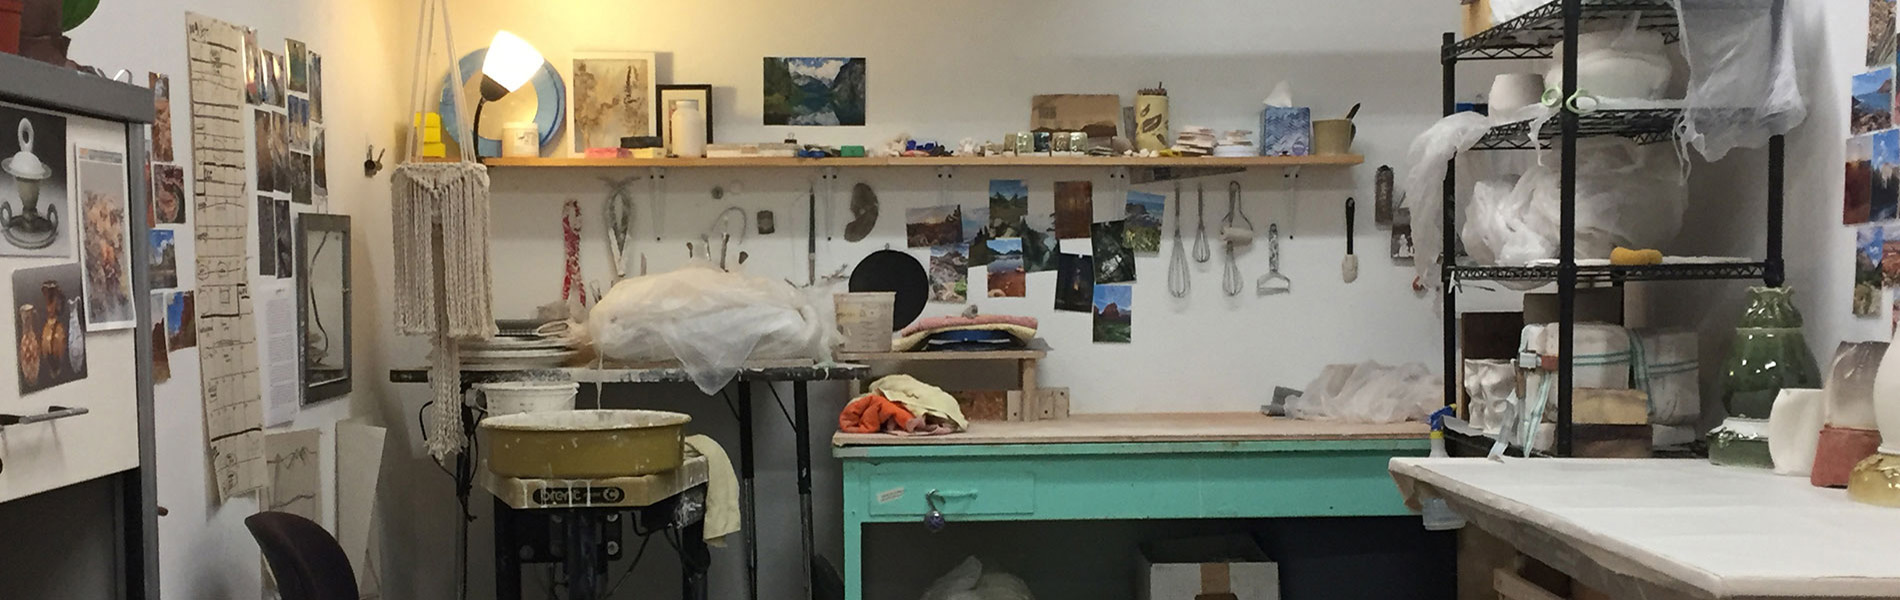 Ceramics Studio of an MFA student